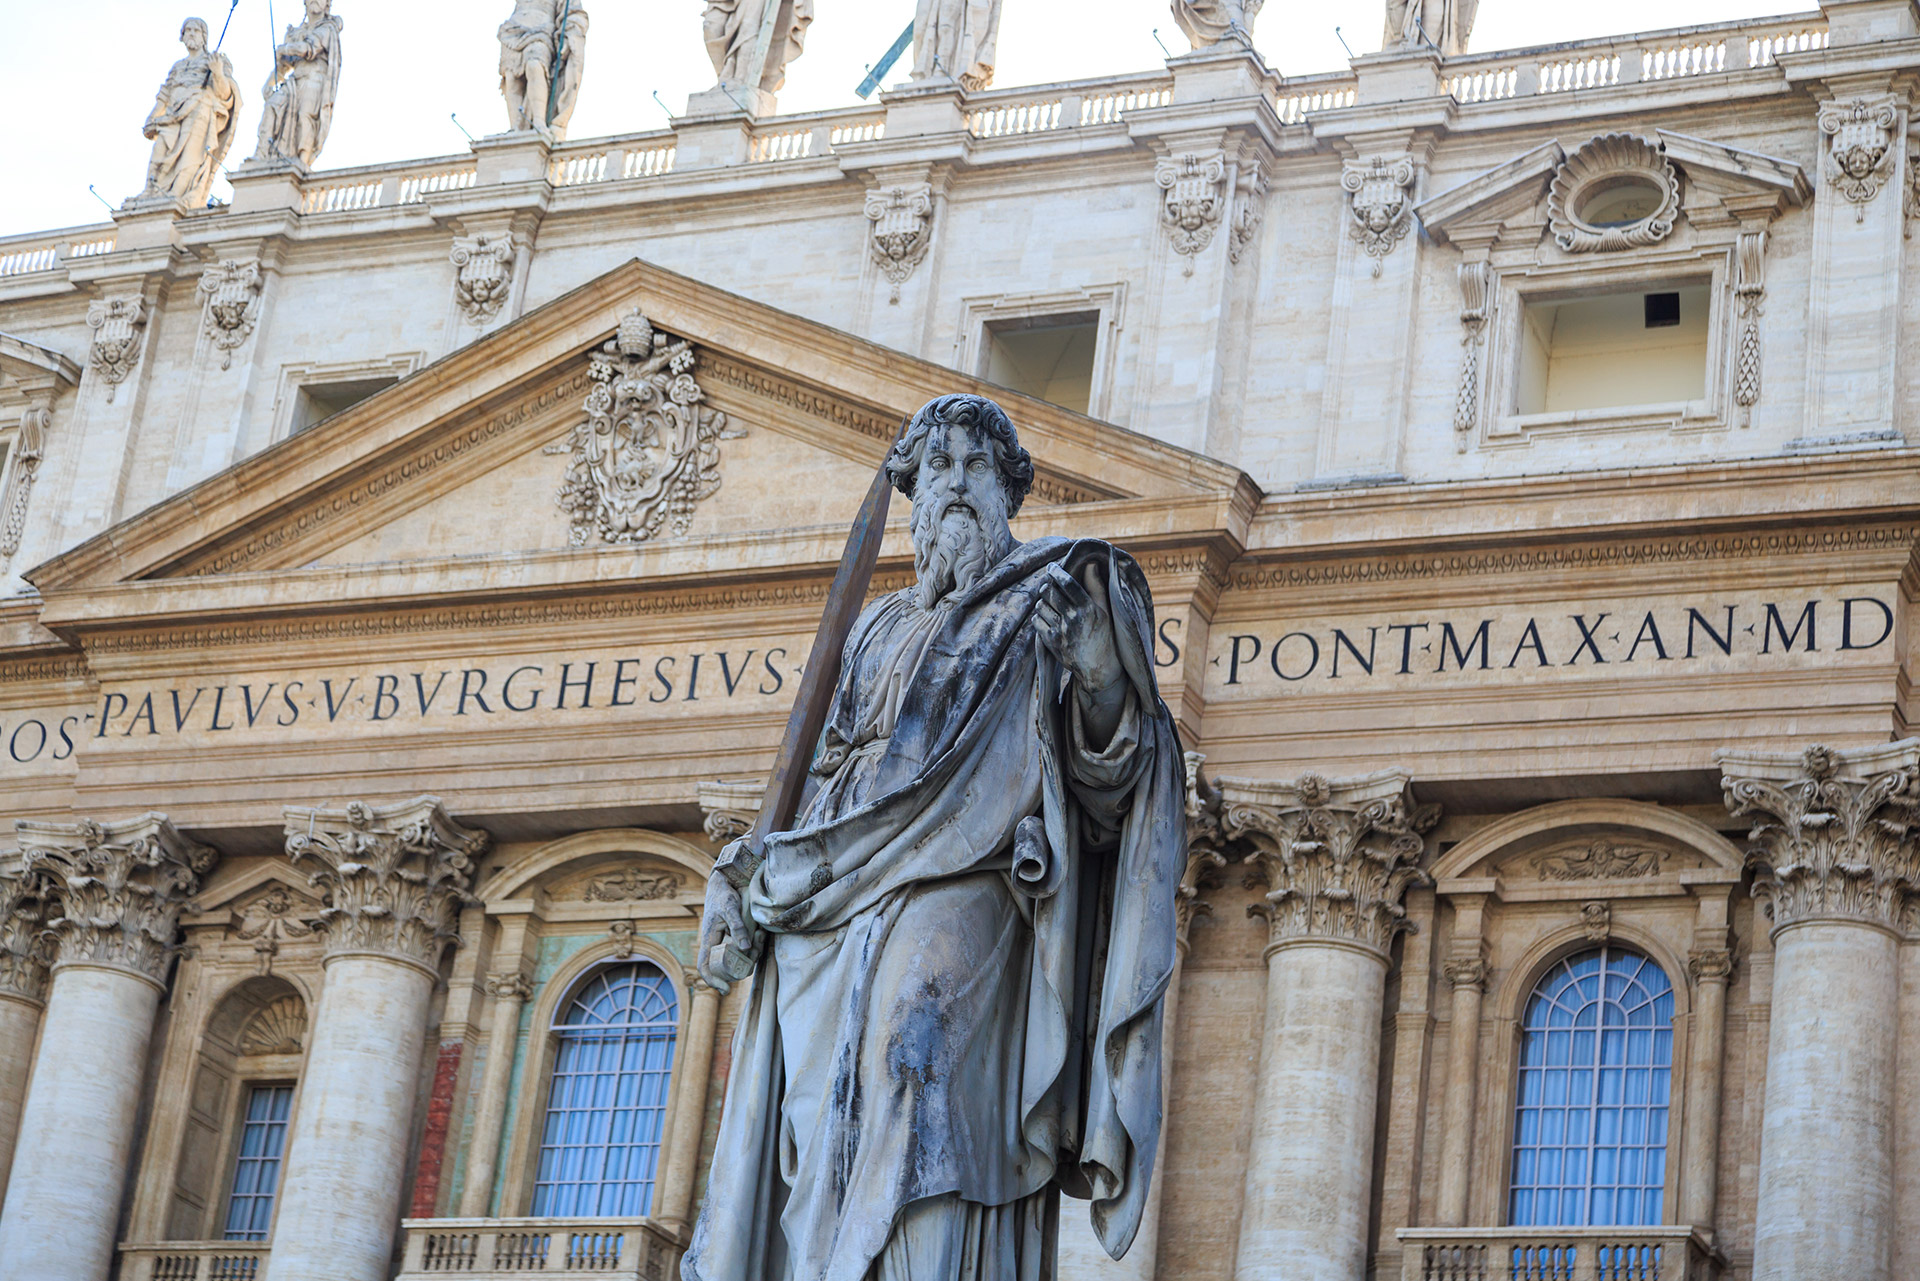 Top 5 Things to See in the Vatican Museums